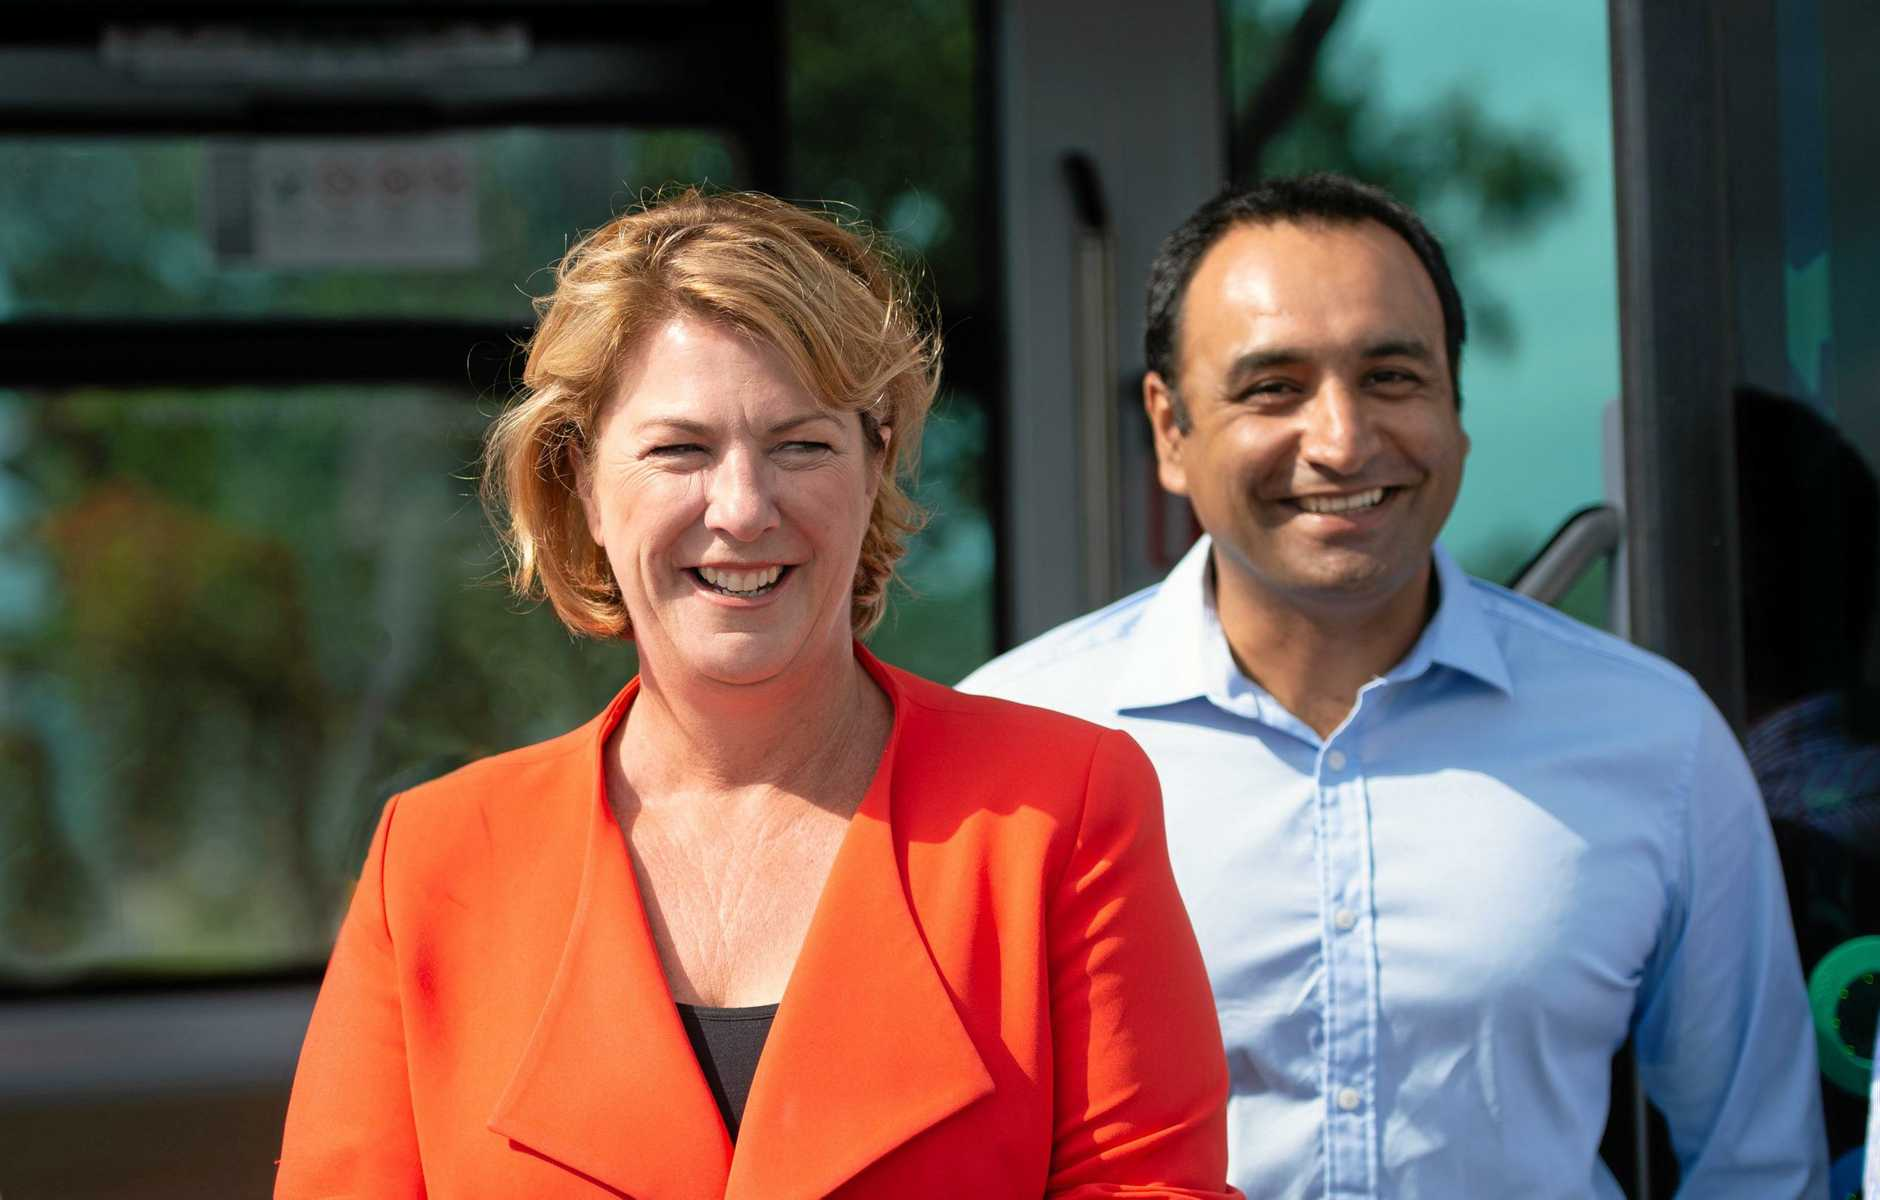 SEATS RETAINED: The Nationals Member for Oxley Melinda Pavey and newly elected Member for Coffs Harbour Gurmesh Singh.